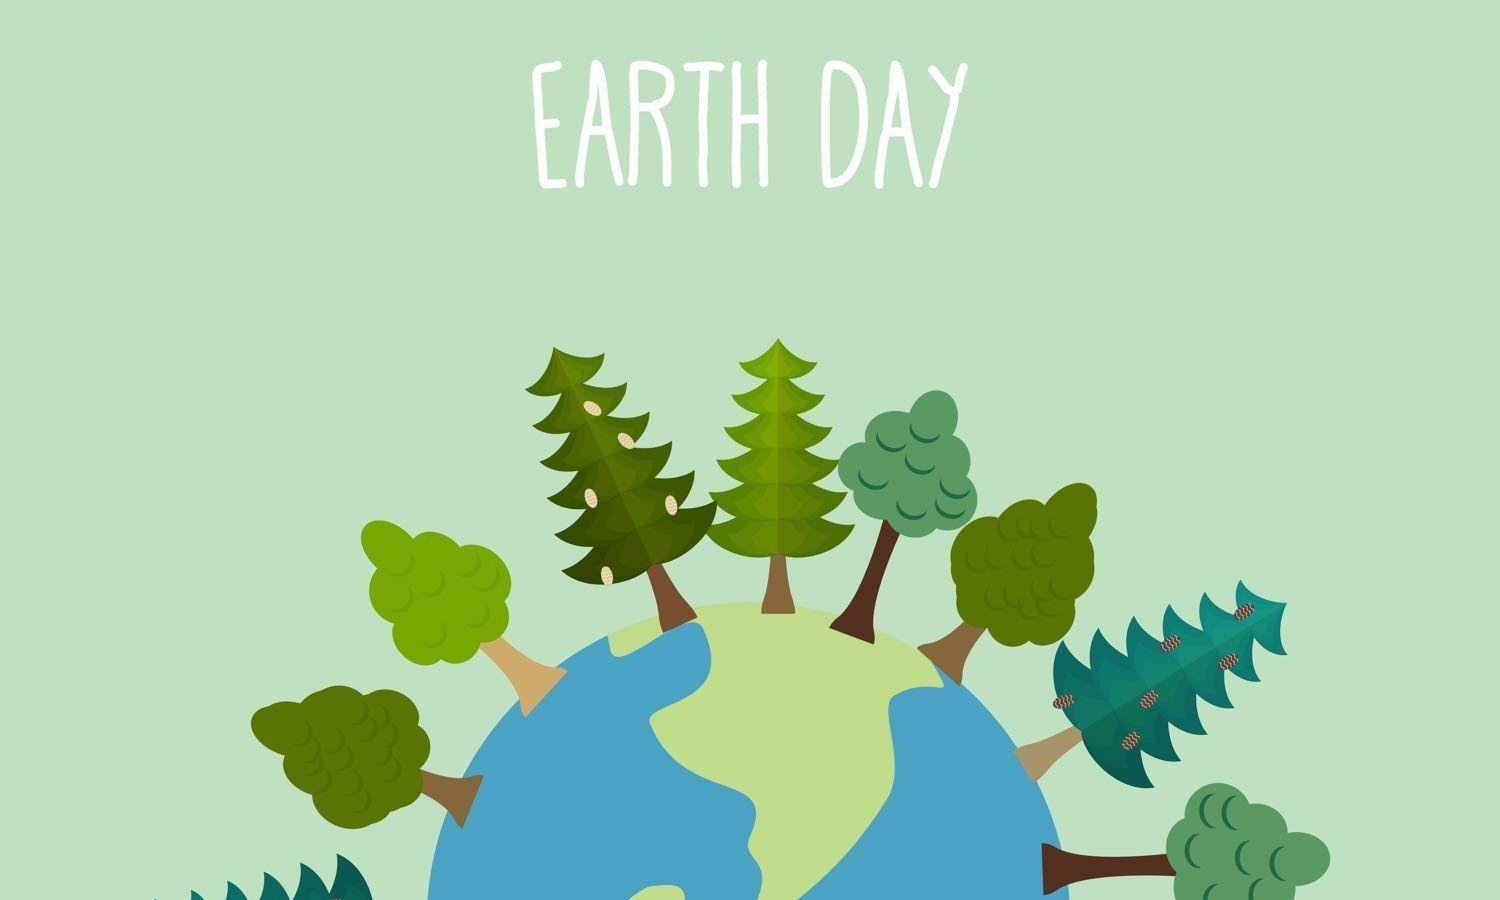 Earth Day Quotes, Poster, Image Facts 2017